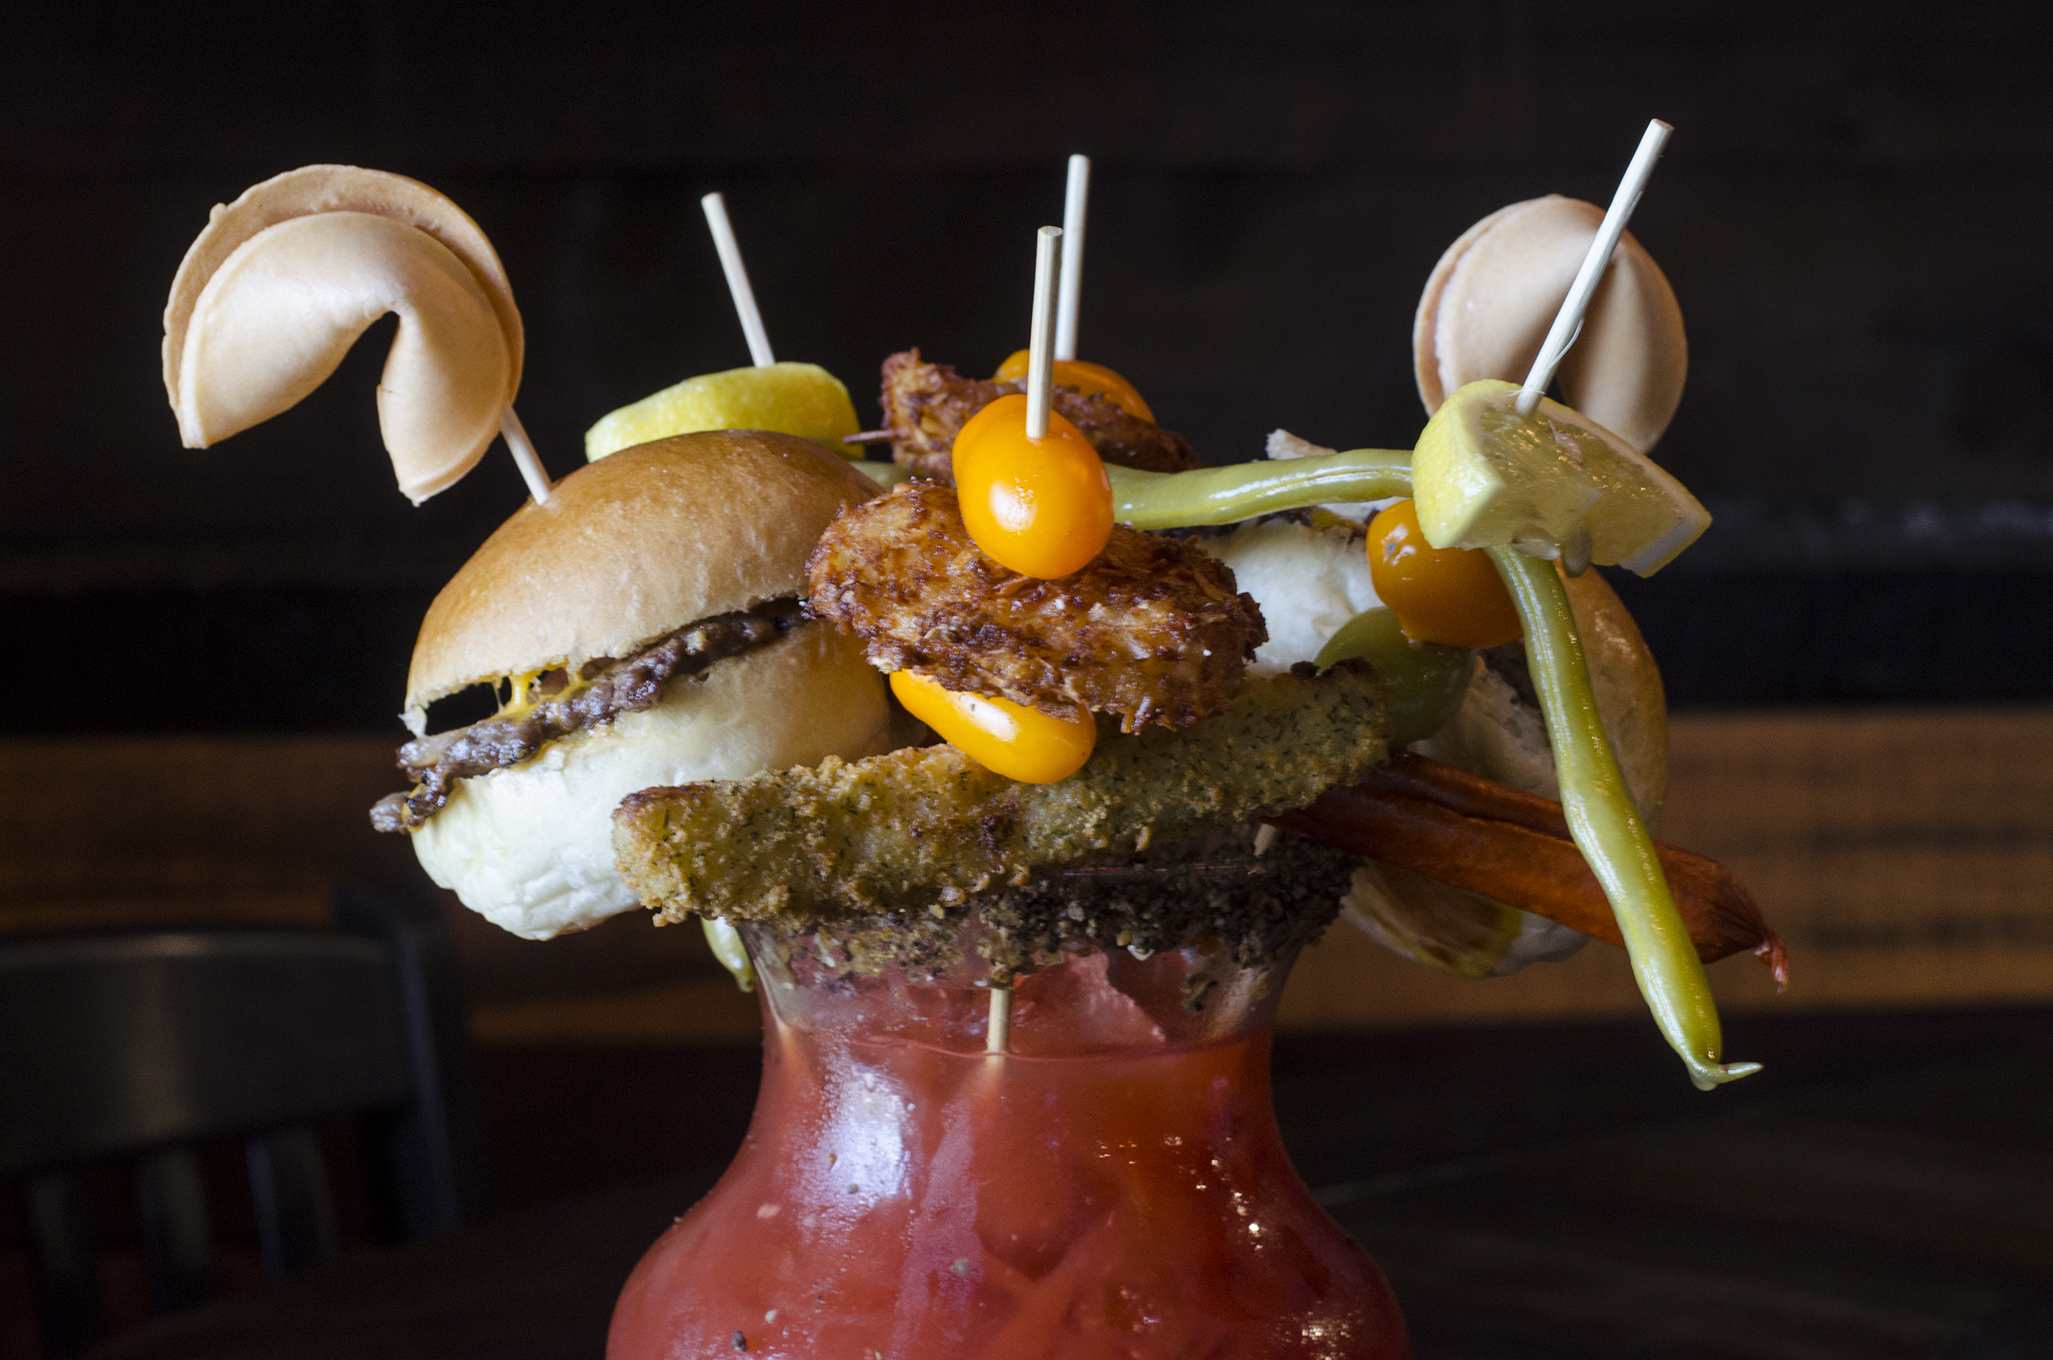 The Ridiculous & Obnoxious Caesar for Two at Walkerville Eatery in Windsor, Ontario.